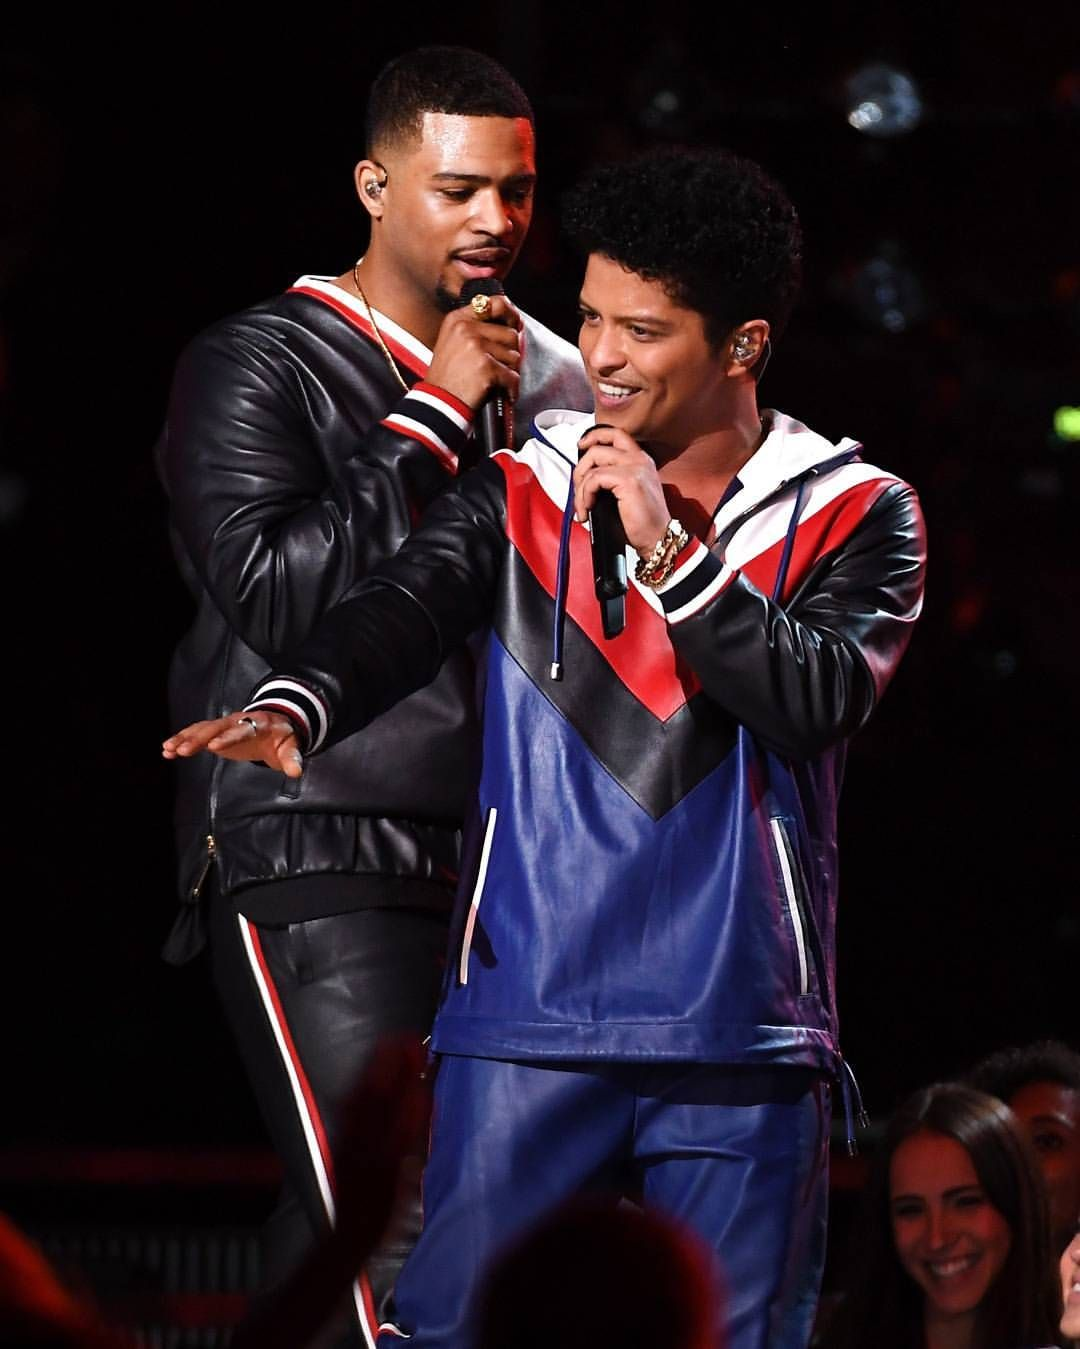 Pin by amy lee on eye candy pinterest bruno mars and eye candy